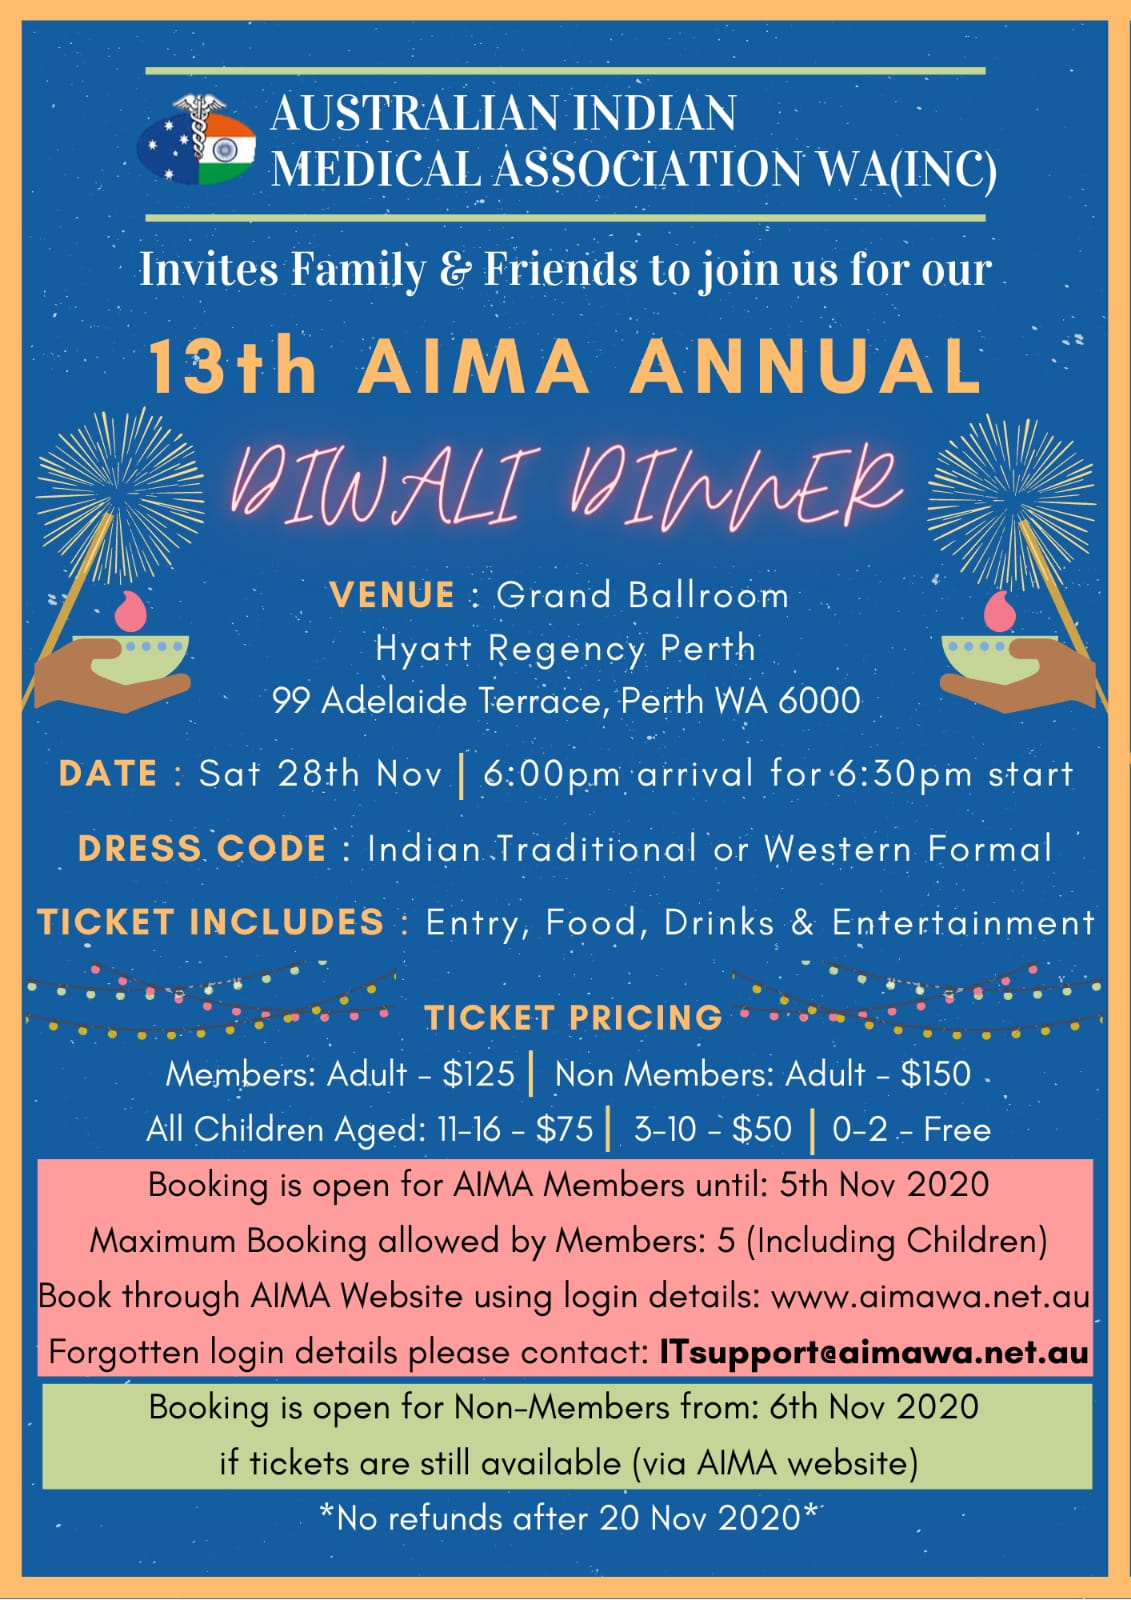 13th AIMA ANNUAL DIWALI Dinner